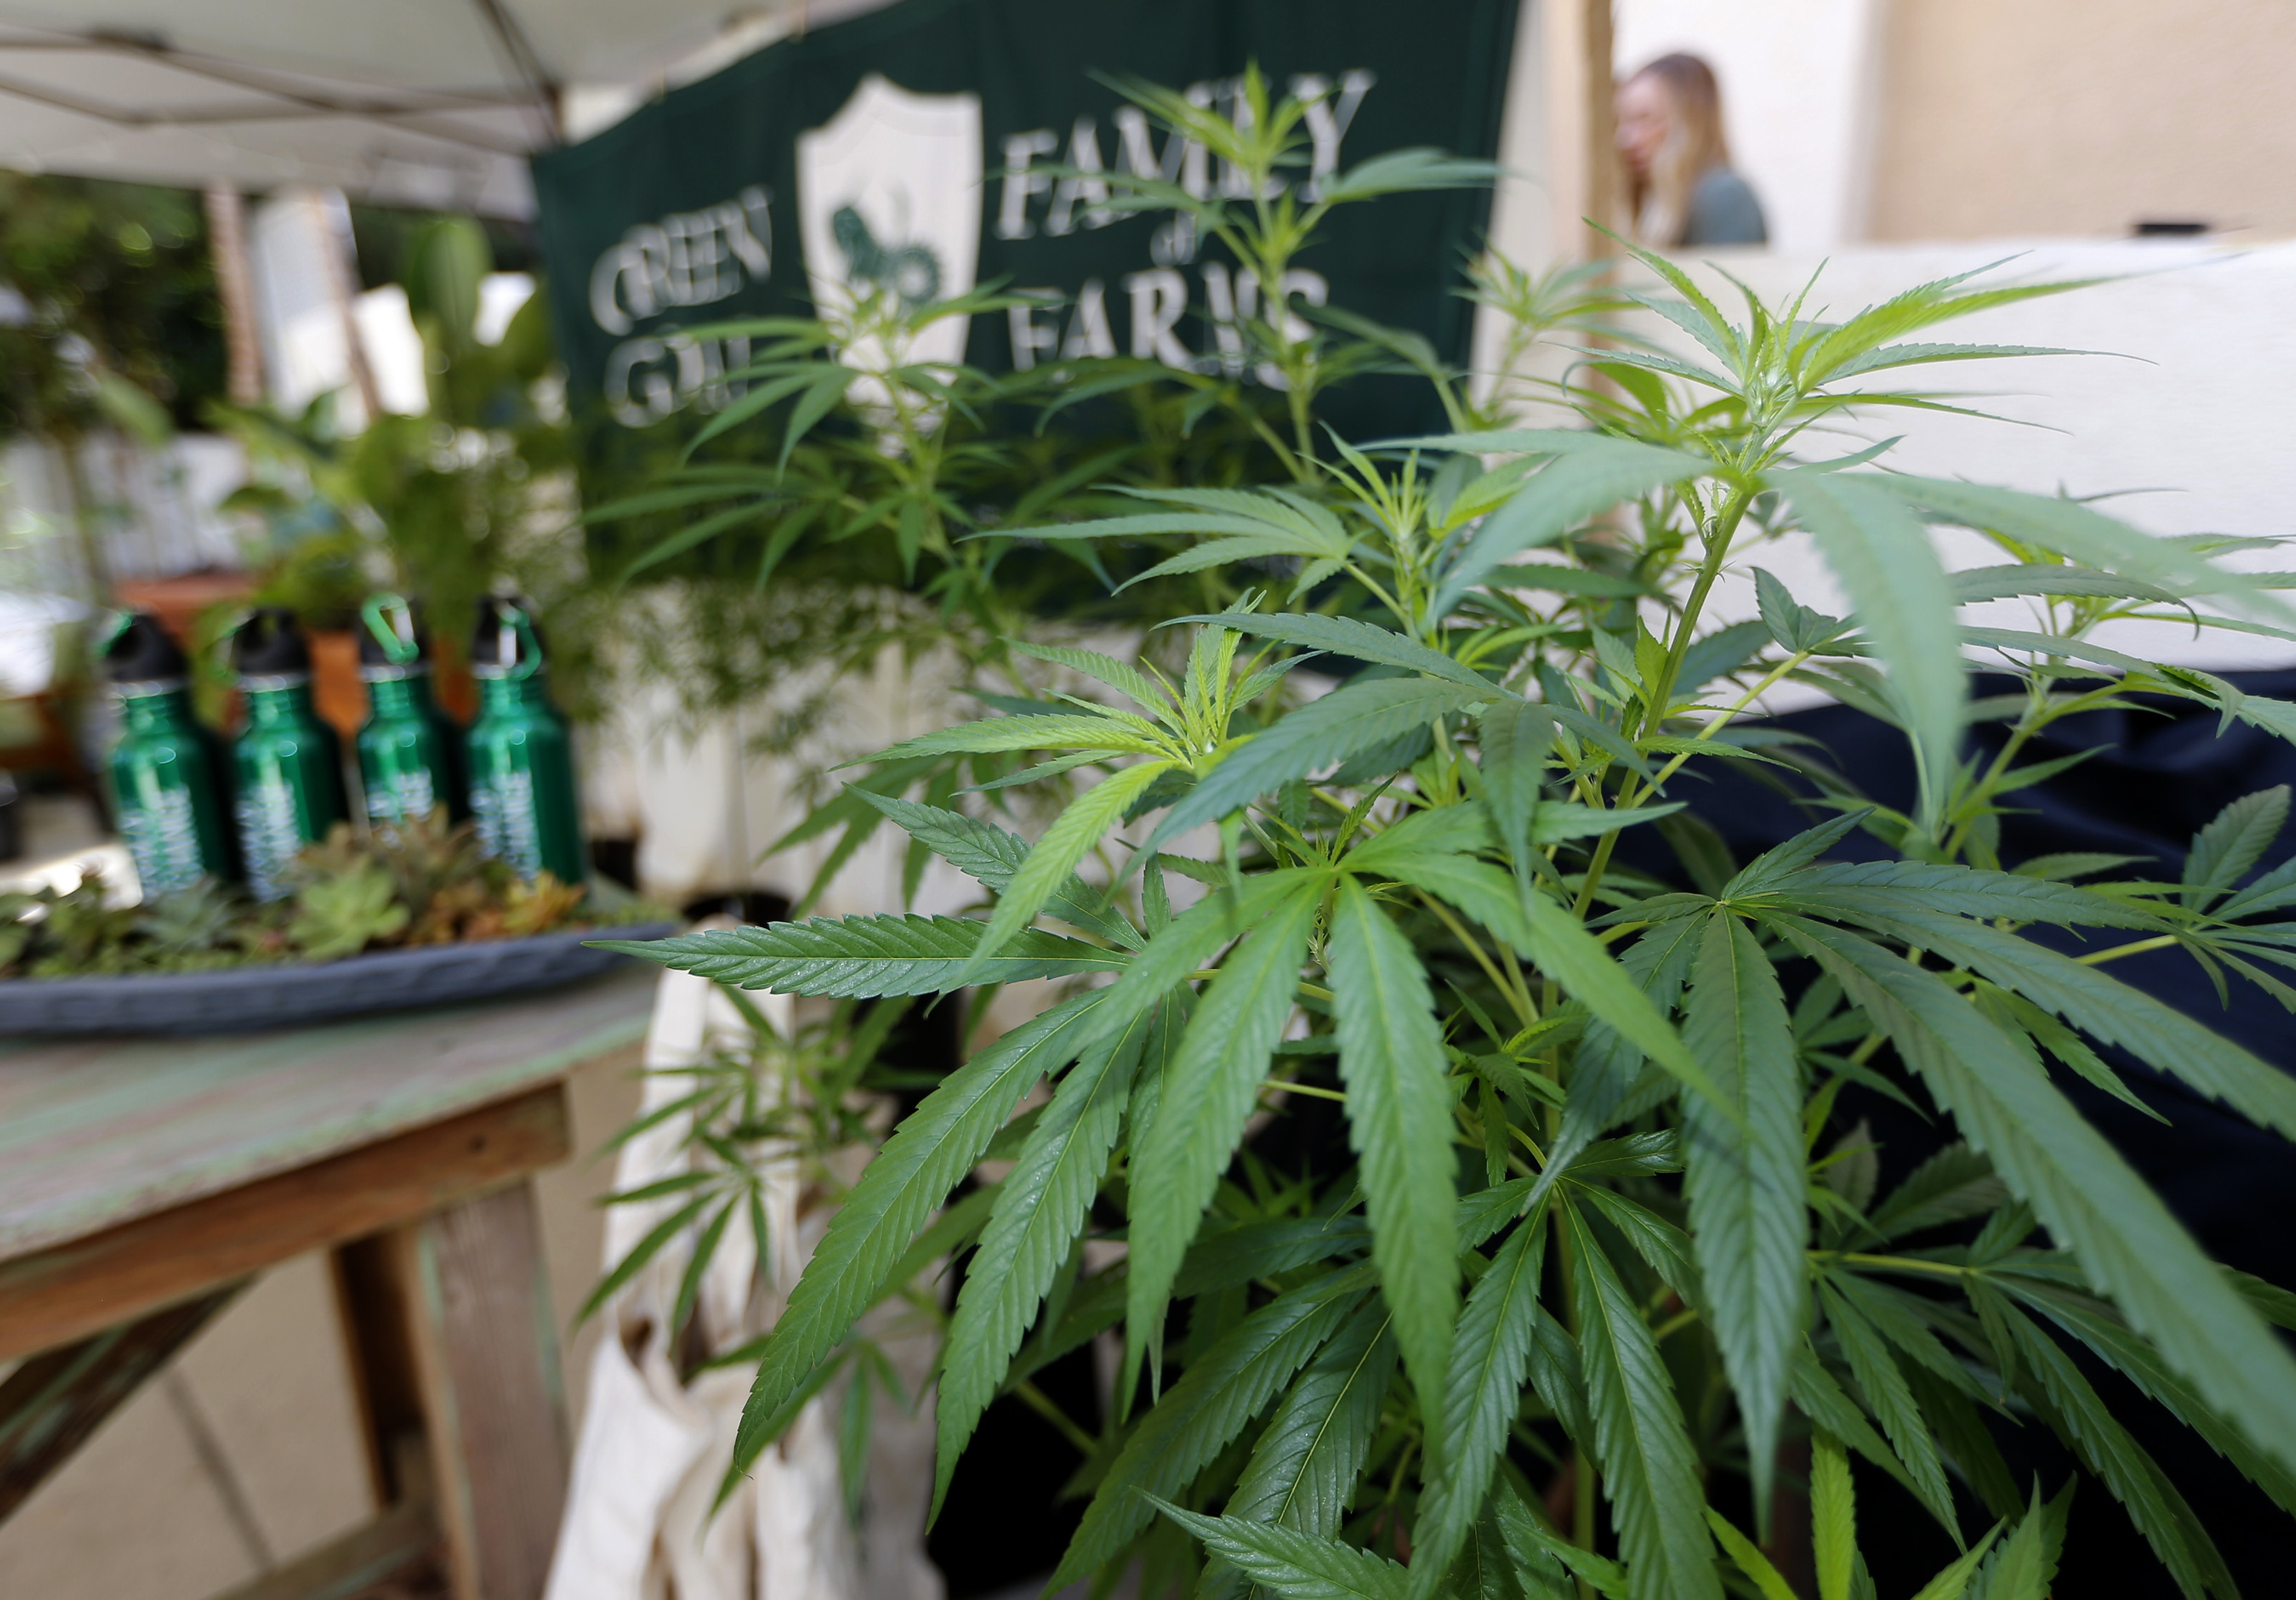 "FILE - In this Sept. 28, 2017, file photo, Marijuana plants are displayed at the Green Goat Family Farms stand at ""The State of Cannabis,"" a California industry group meeting in Long Beach, Calif. There will be no legal pot party in Los Angeles on Jan. 1. California kicks off recreational sales on New Year's Day, becoming the largest state in the nation with legal cannabis for adults. But Los Angeles officials announced Friday, Dec. 22, 2017, that dispensaries in the city won't be part of the celebration. The city won't begin accepting applications to sell legal recreational pot until Jan. 3, 2018, and it could take weeks before those businesses are properly licensed with the city and state. (AP Photo/Damian Dovarganes, File)"